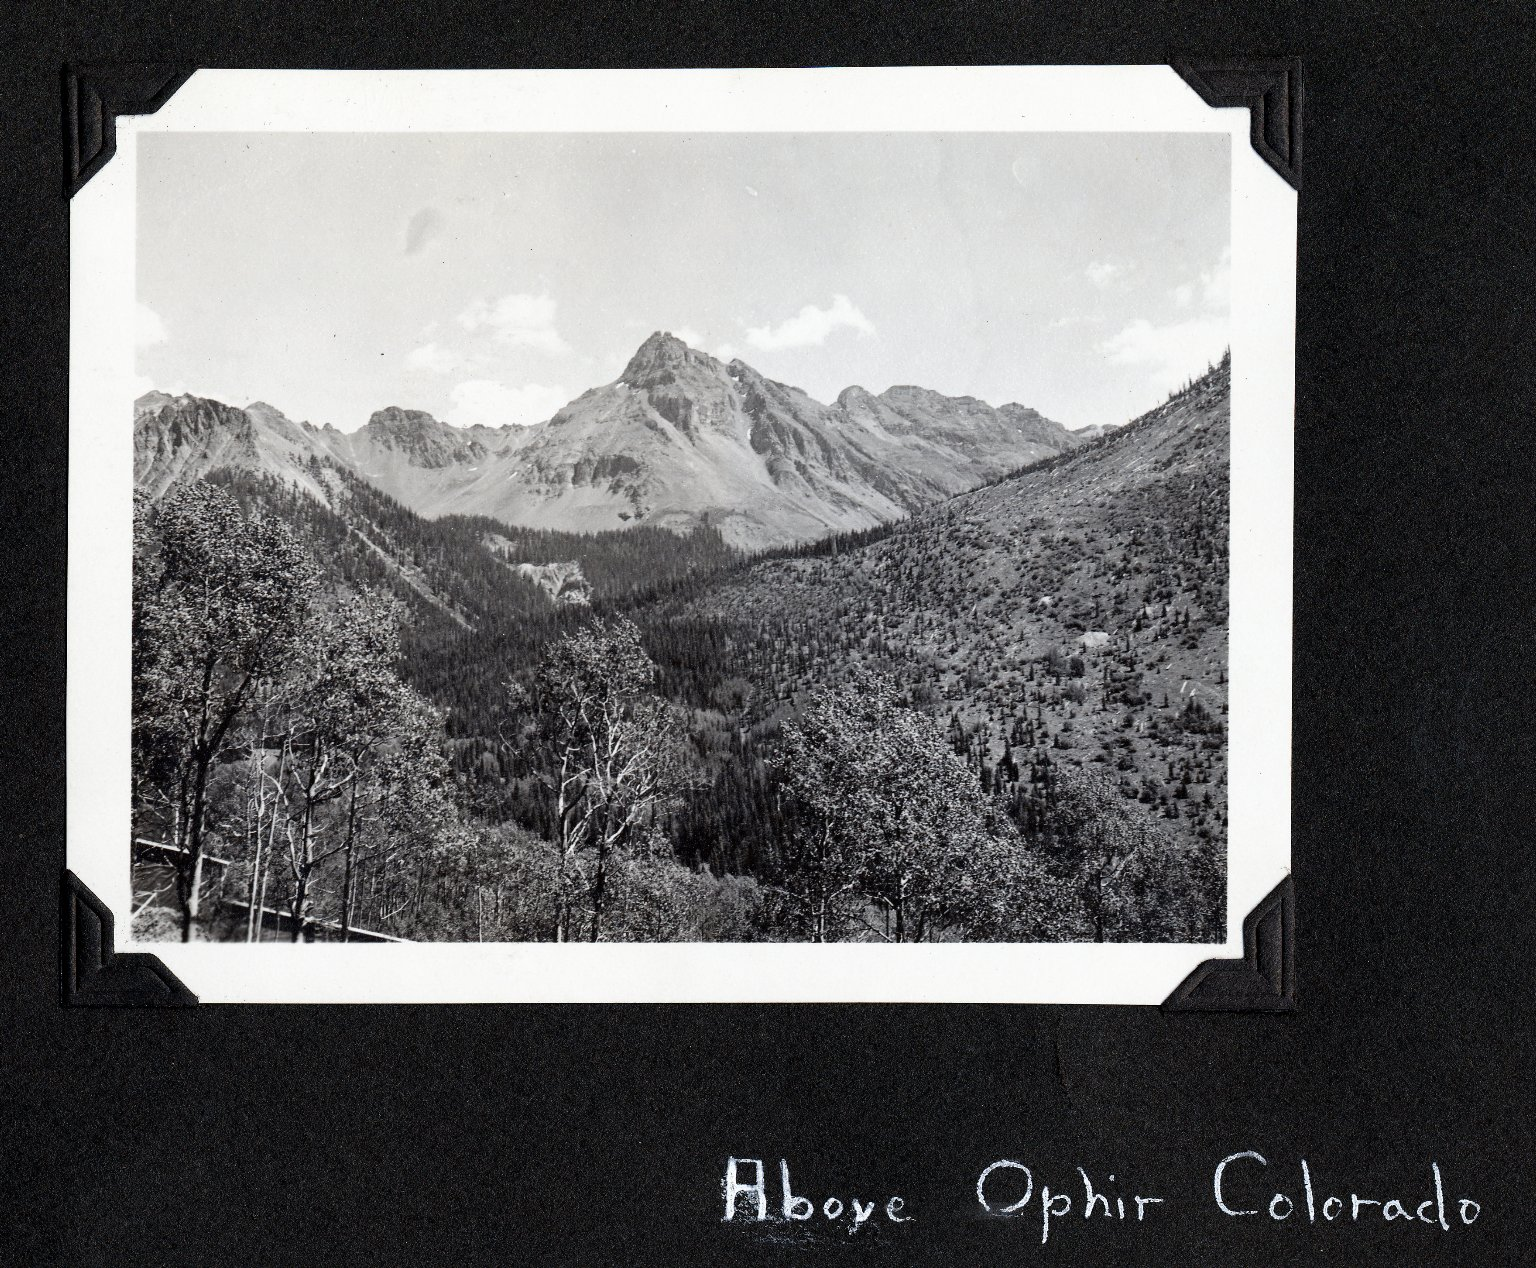 Above Ophir Colorado